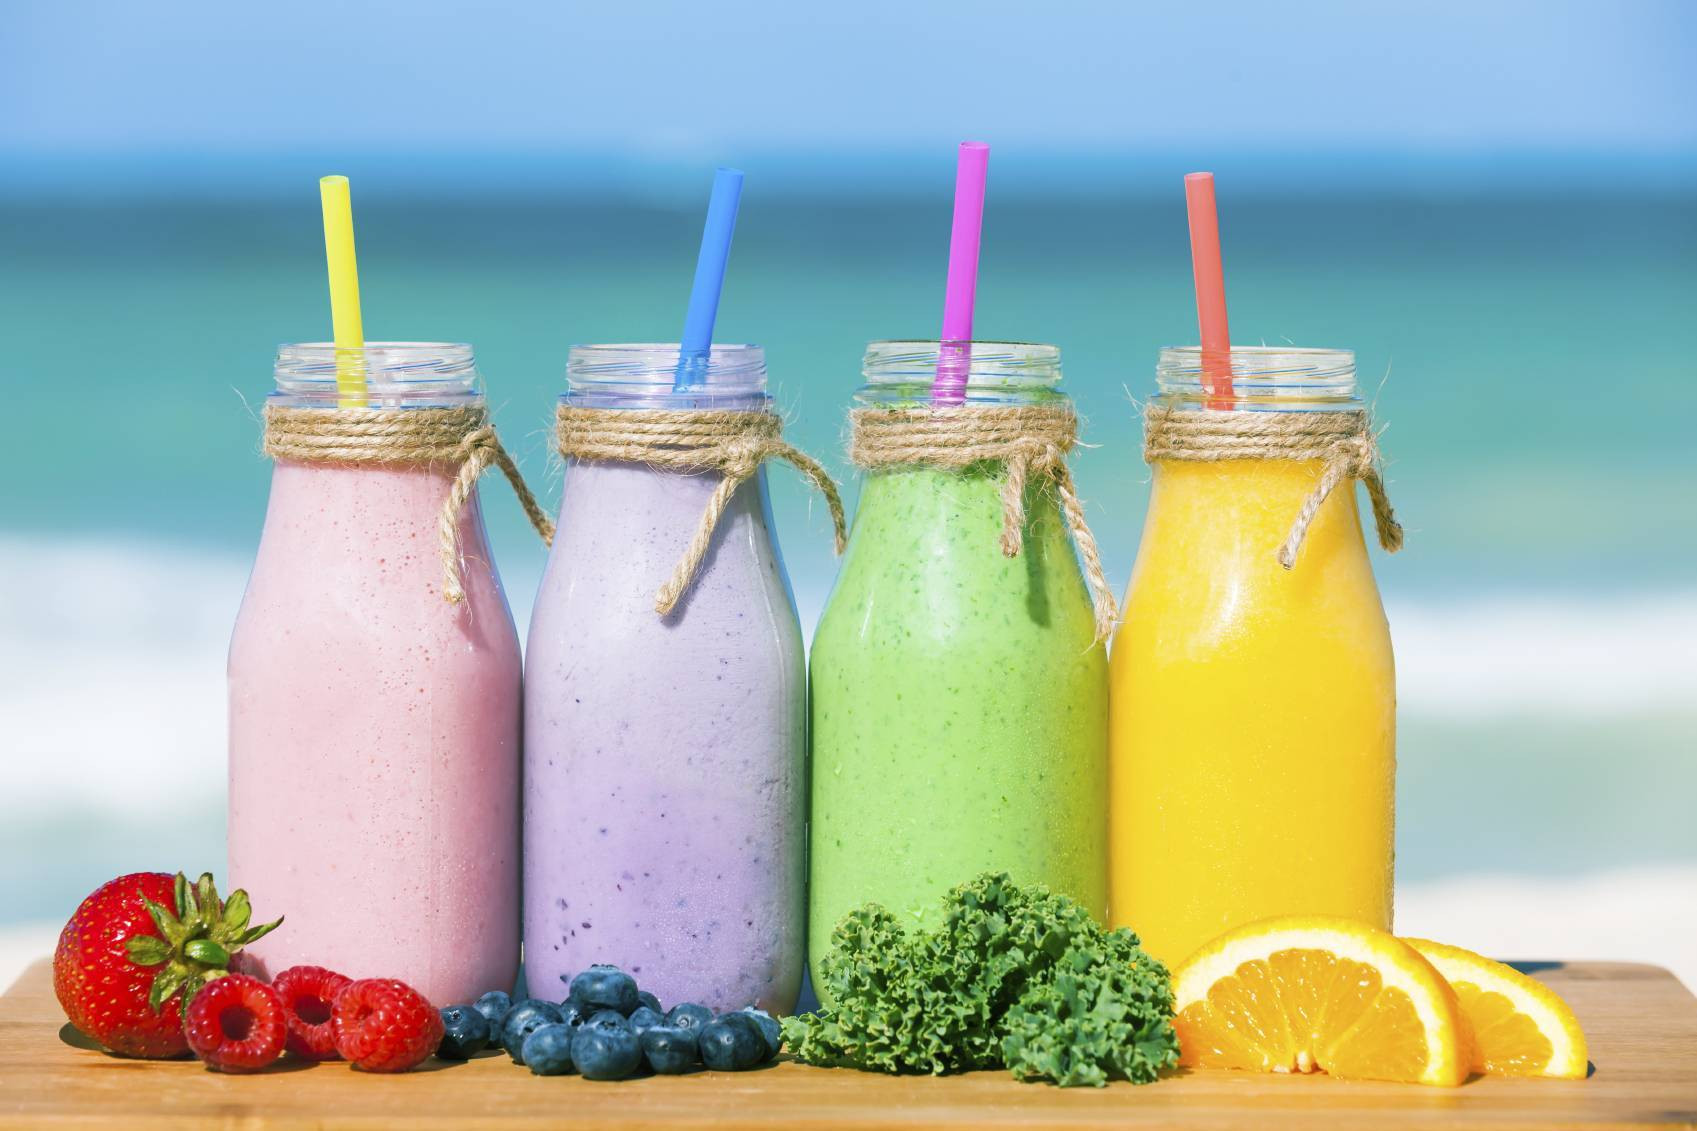 Healthy Smoothies To Make  7 Healthy Smoothie Recipes